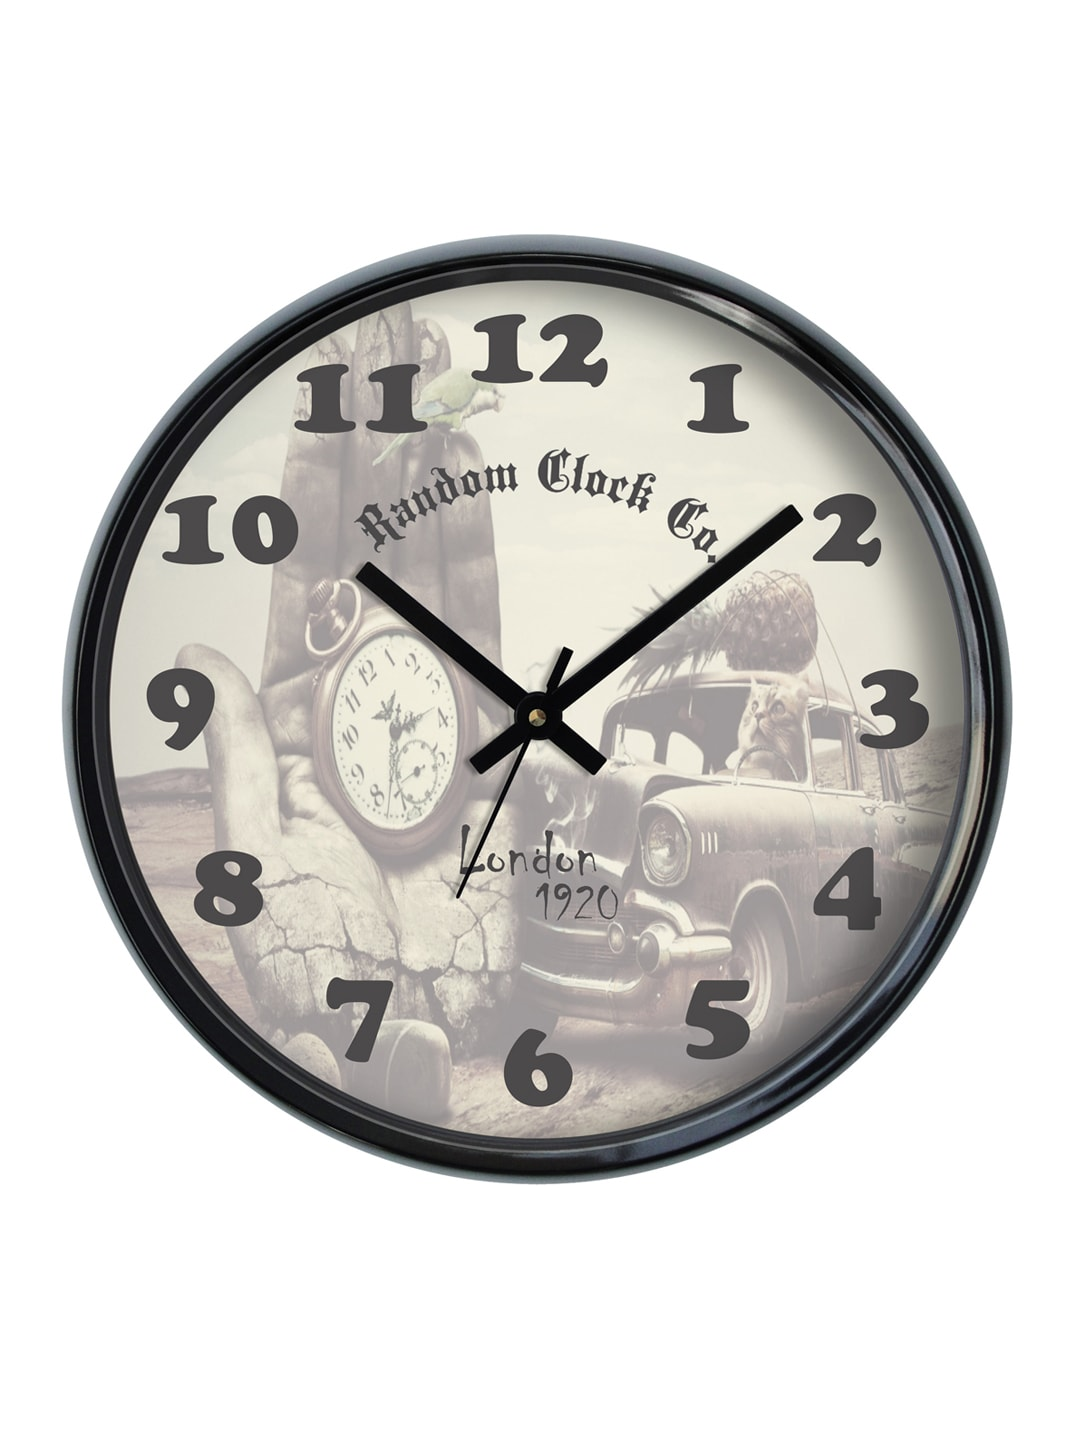 Wall clock buy online india image collections home wall wall clock online purchase gallery home wall decoration ideas digital wall clocks online india image collections amipublicfo Gallery